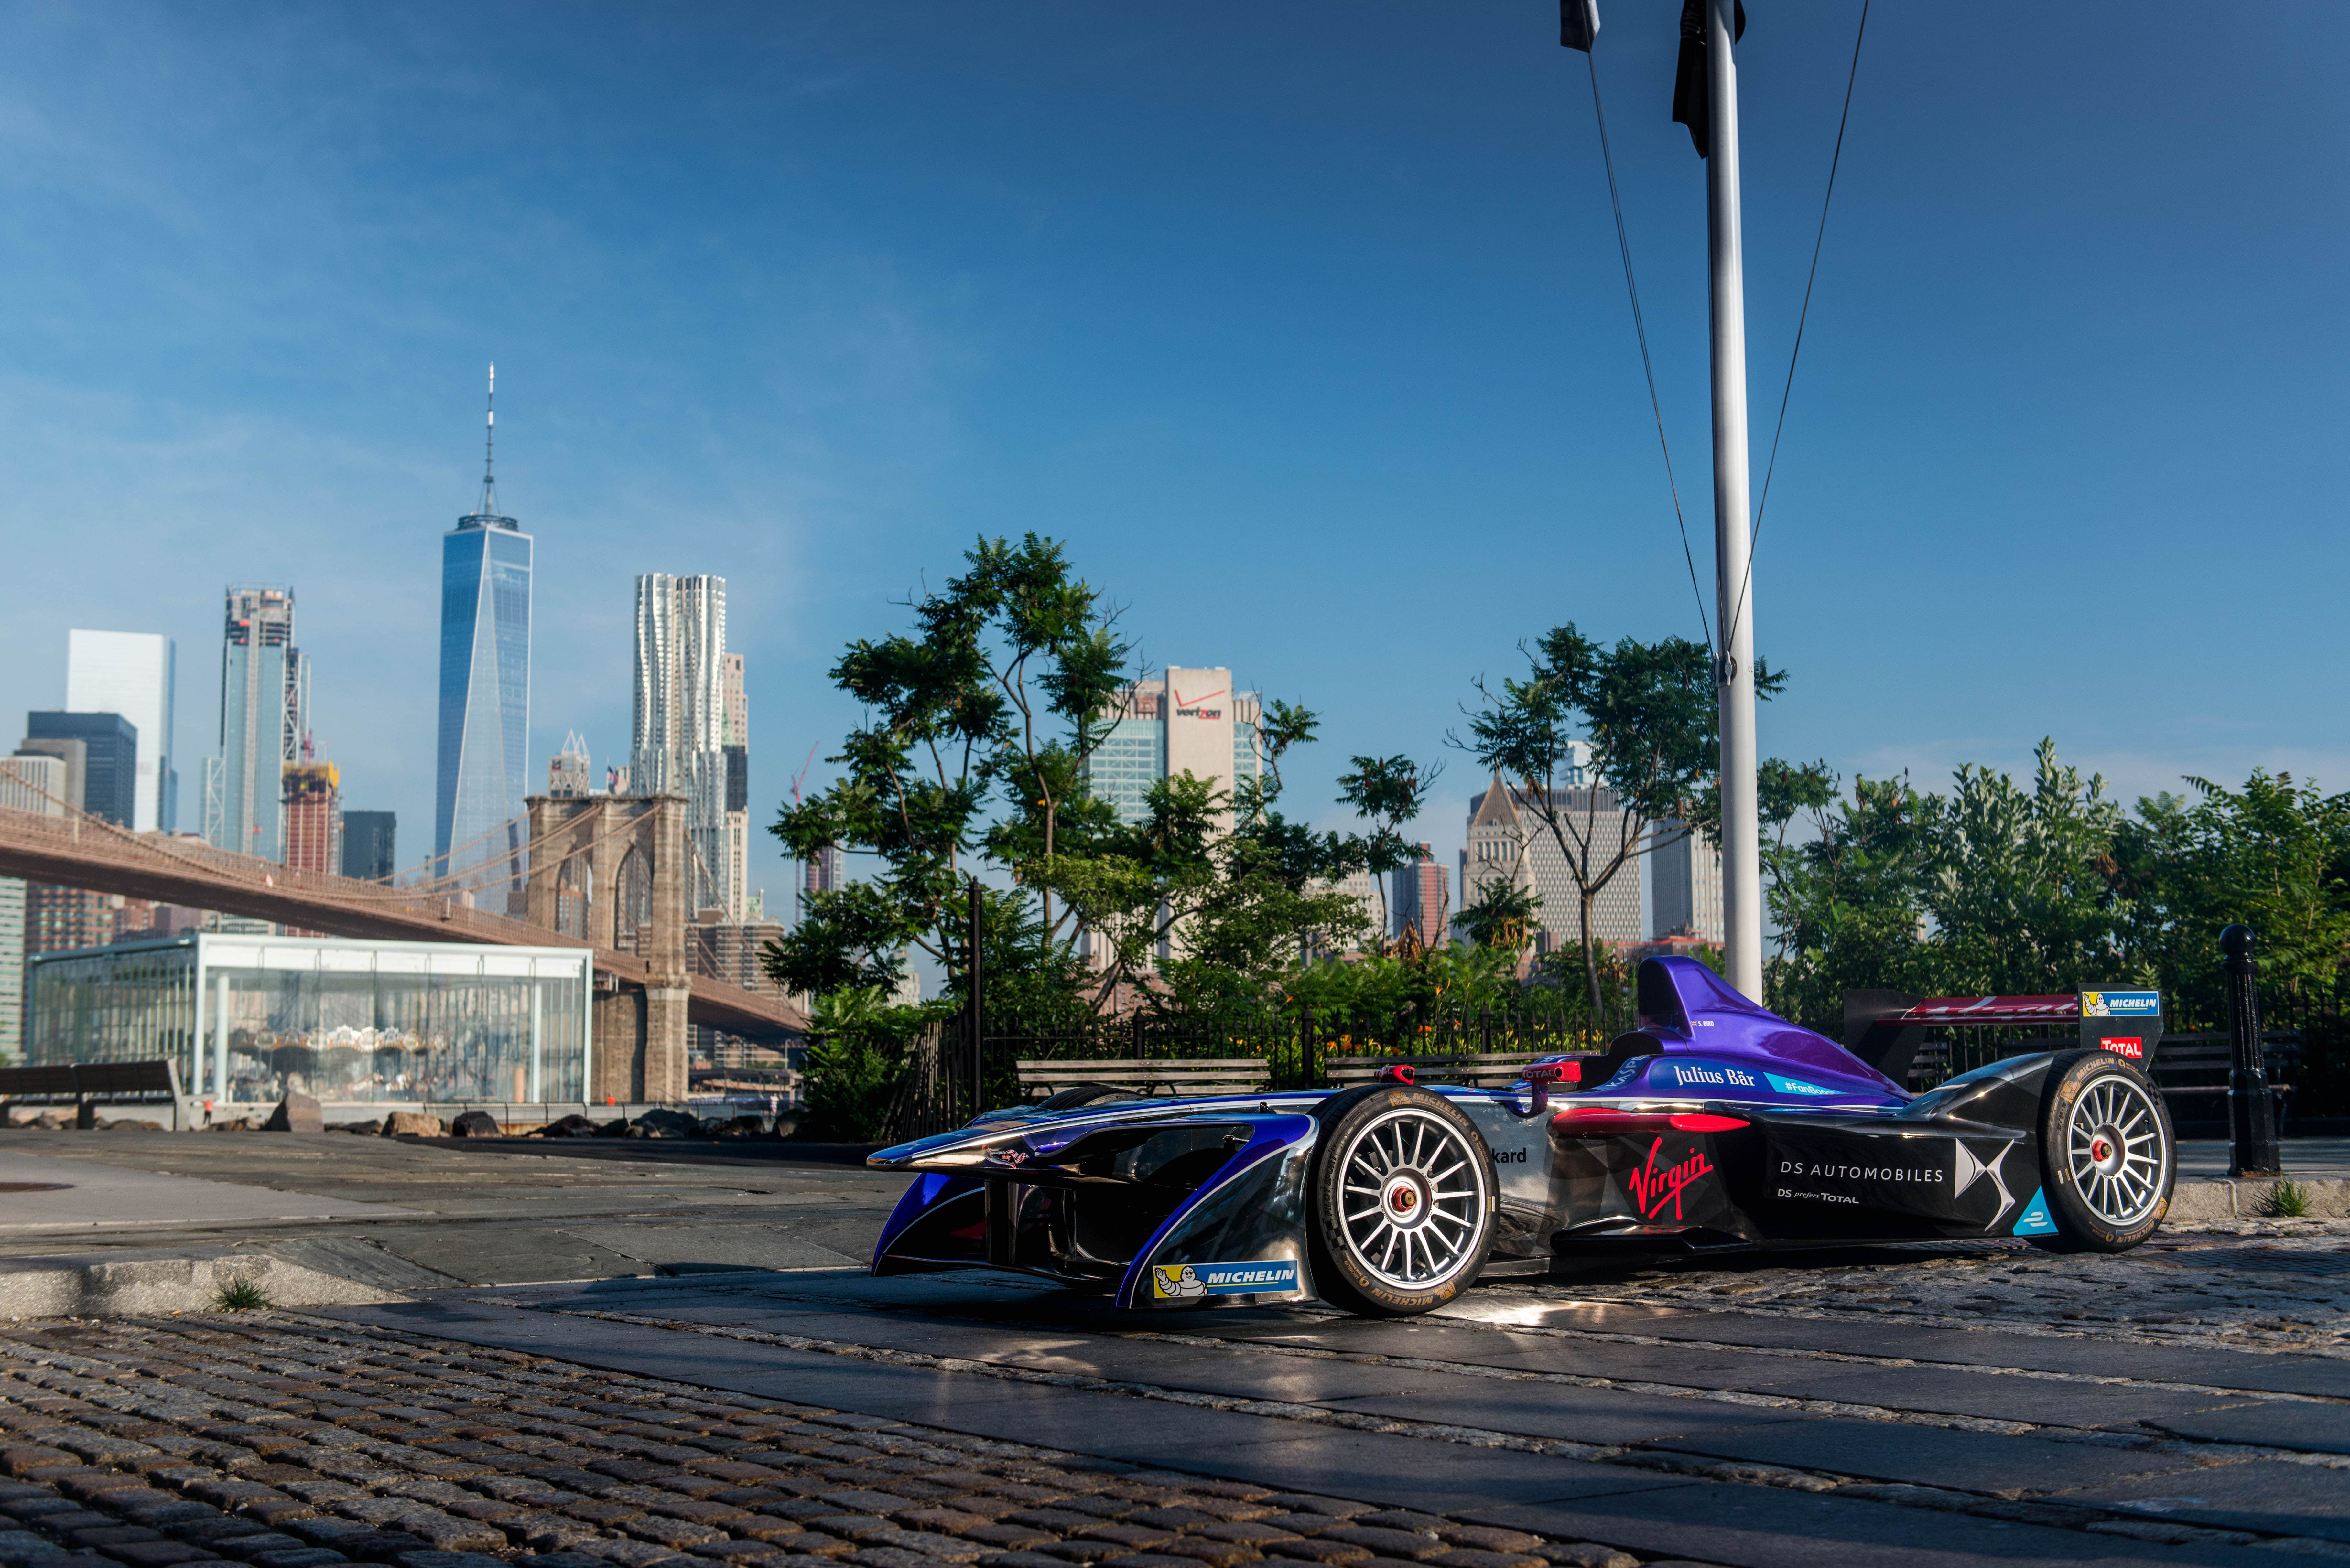 spacesuit-media-nat-twiss-ny-eprix-5058